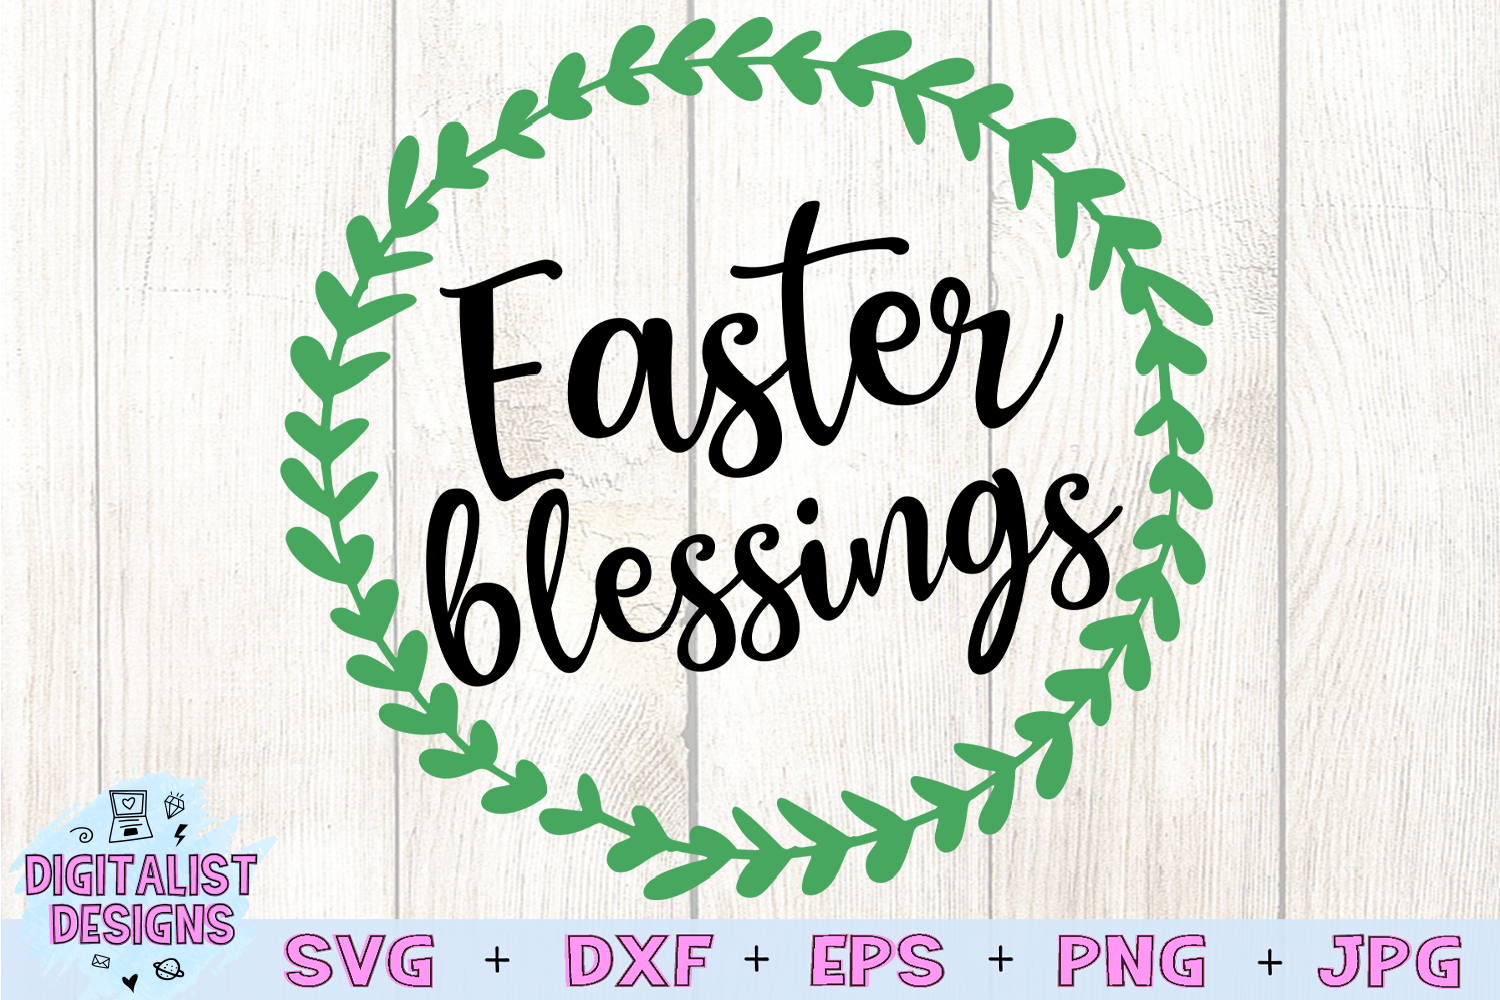 Easter Blessings SVG, Easter SVG, Wreath SVG example image 2